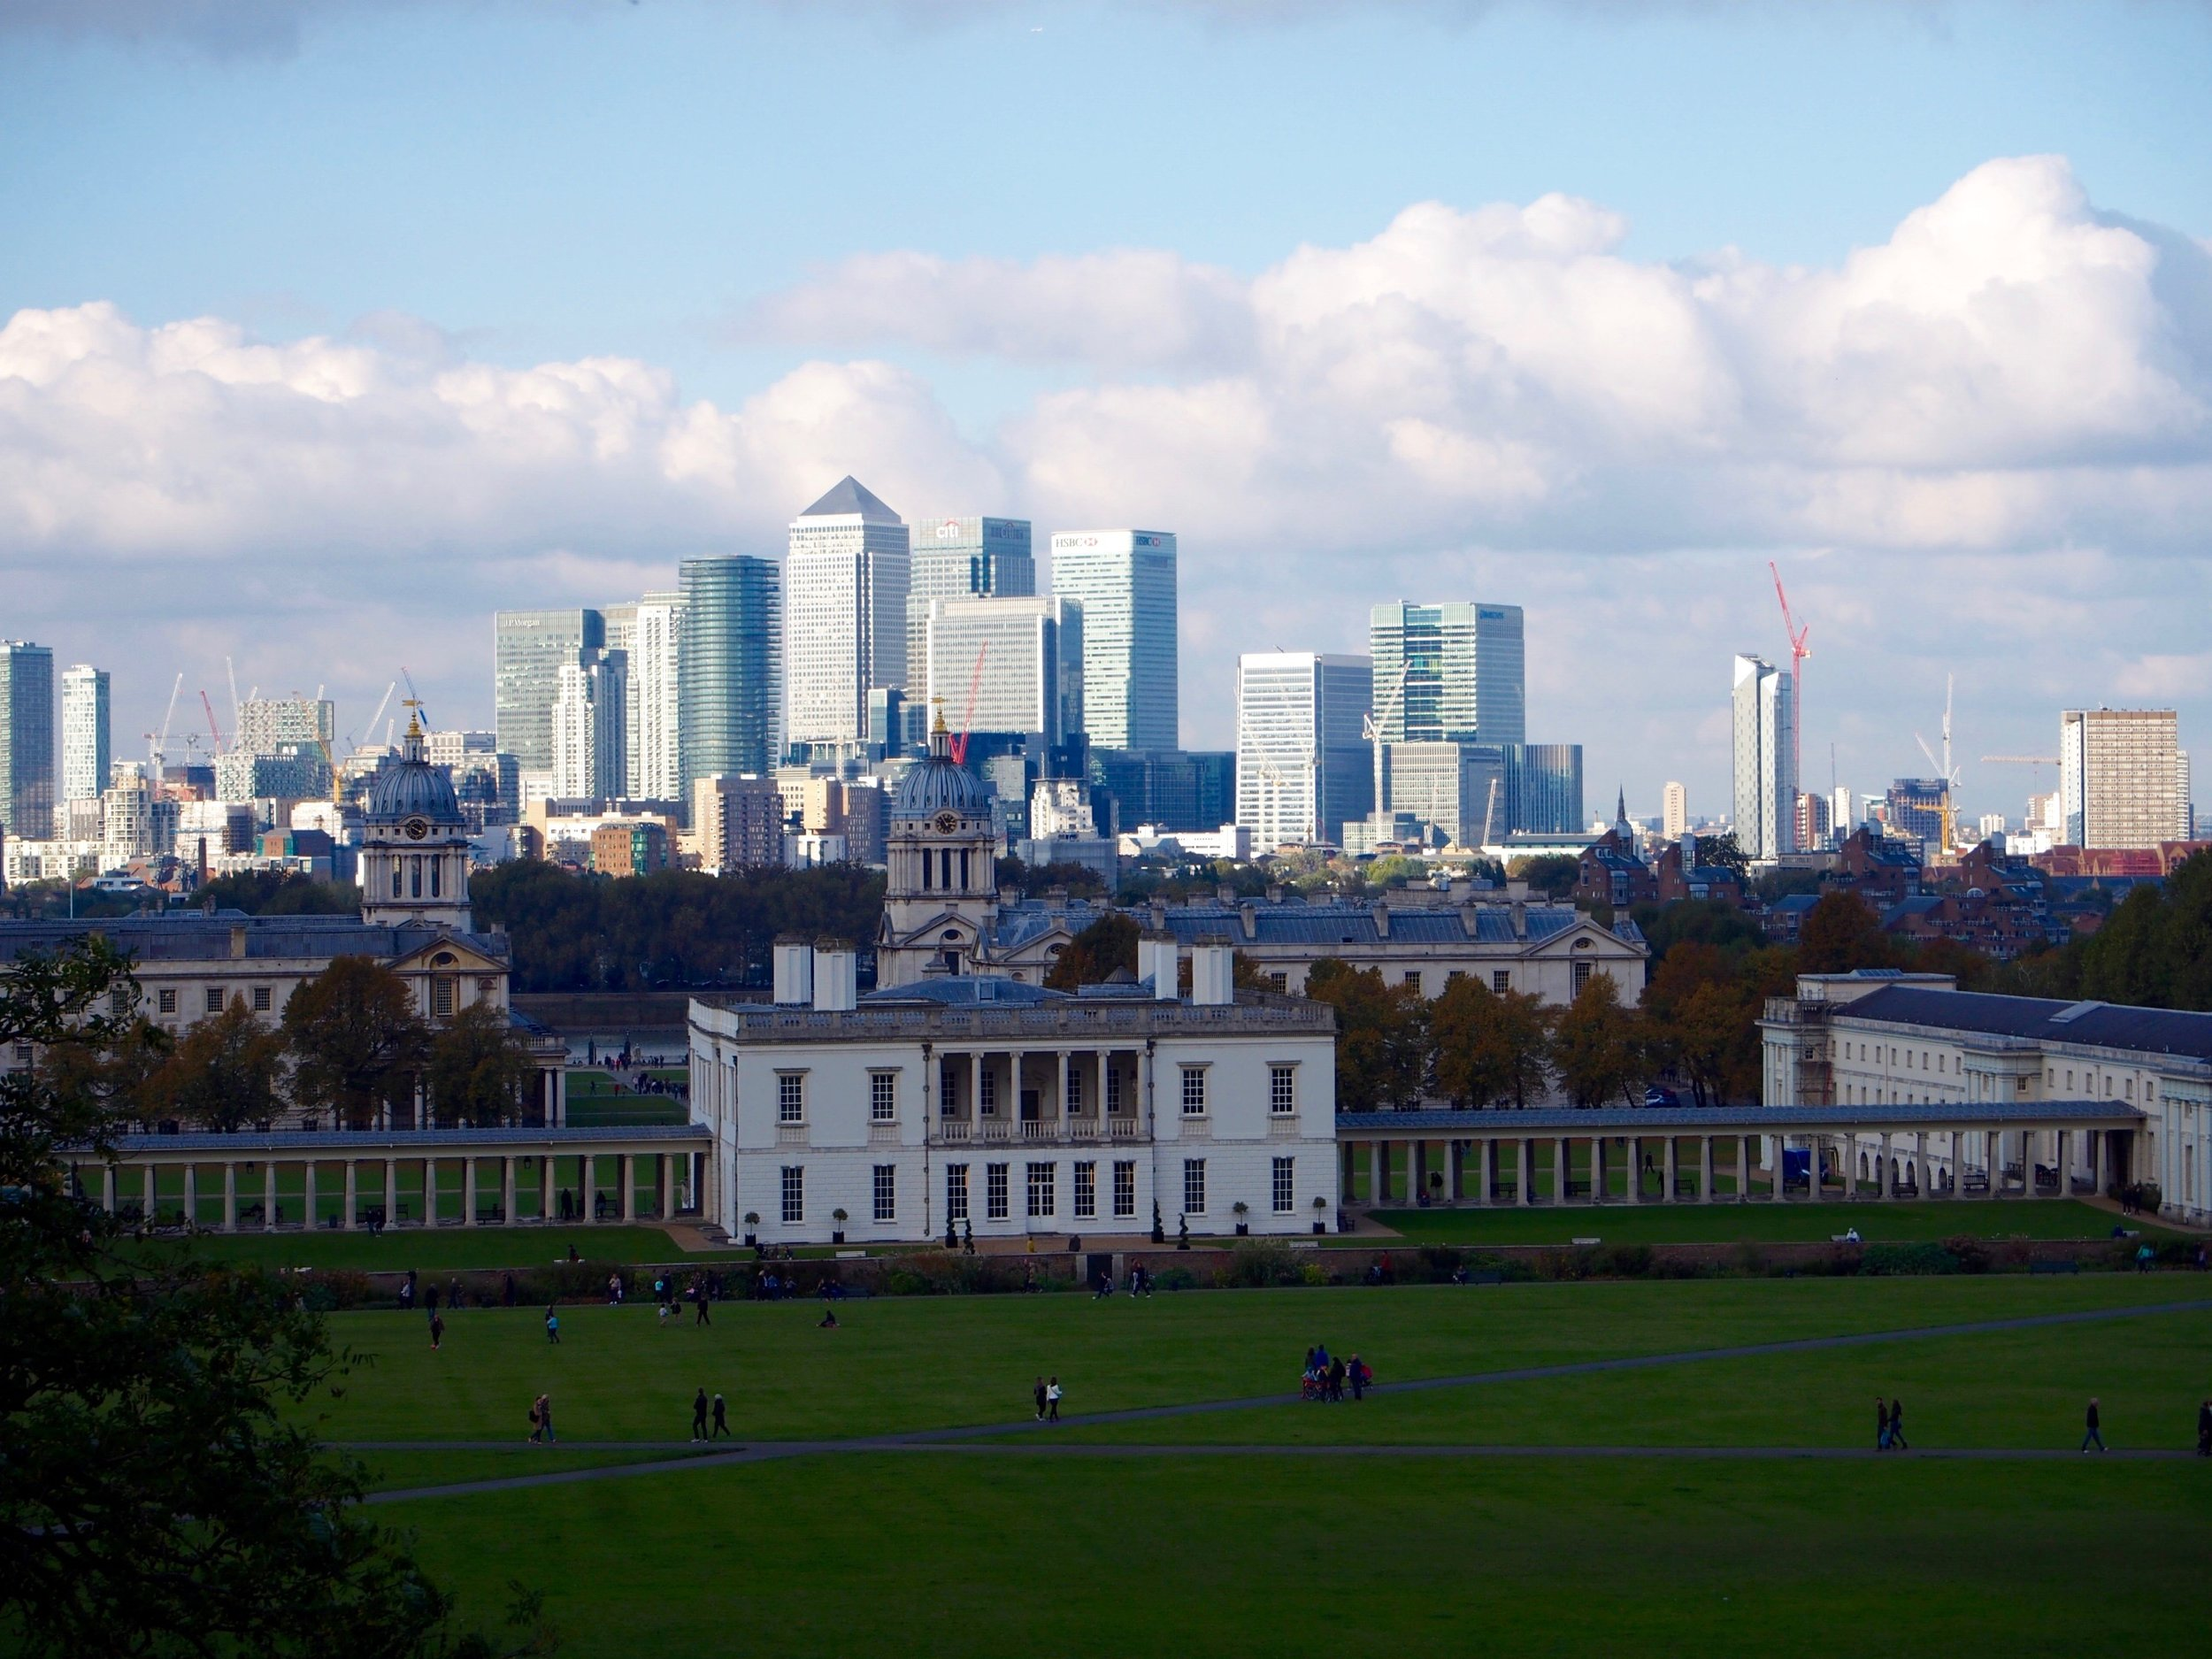 View from Royal Observatory